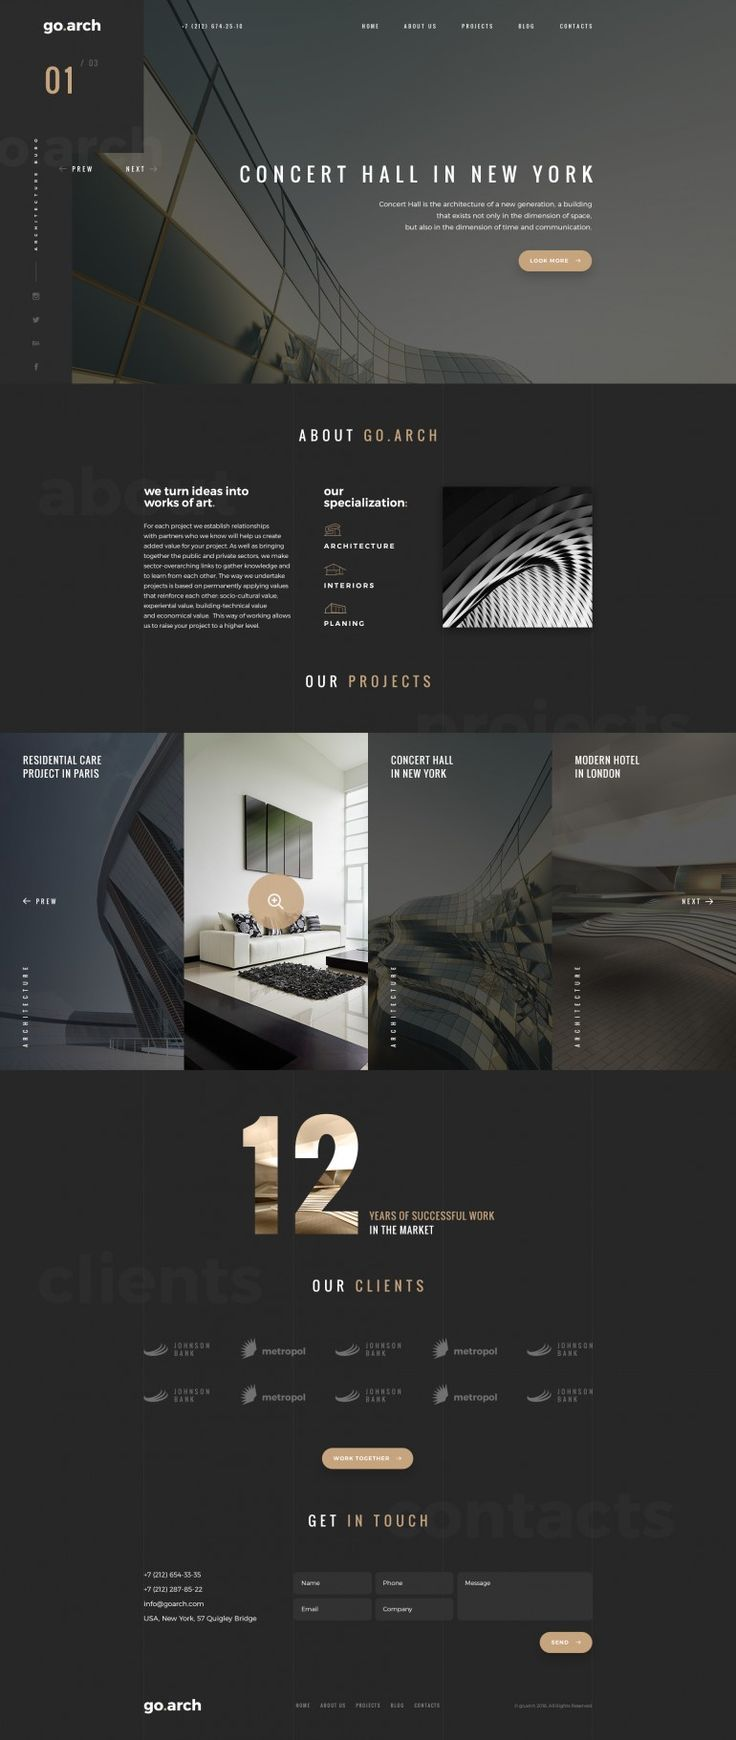 519 best information architecture images on pinterest - 10 interesting facts about interior design ...